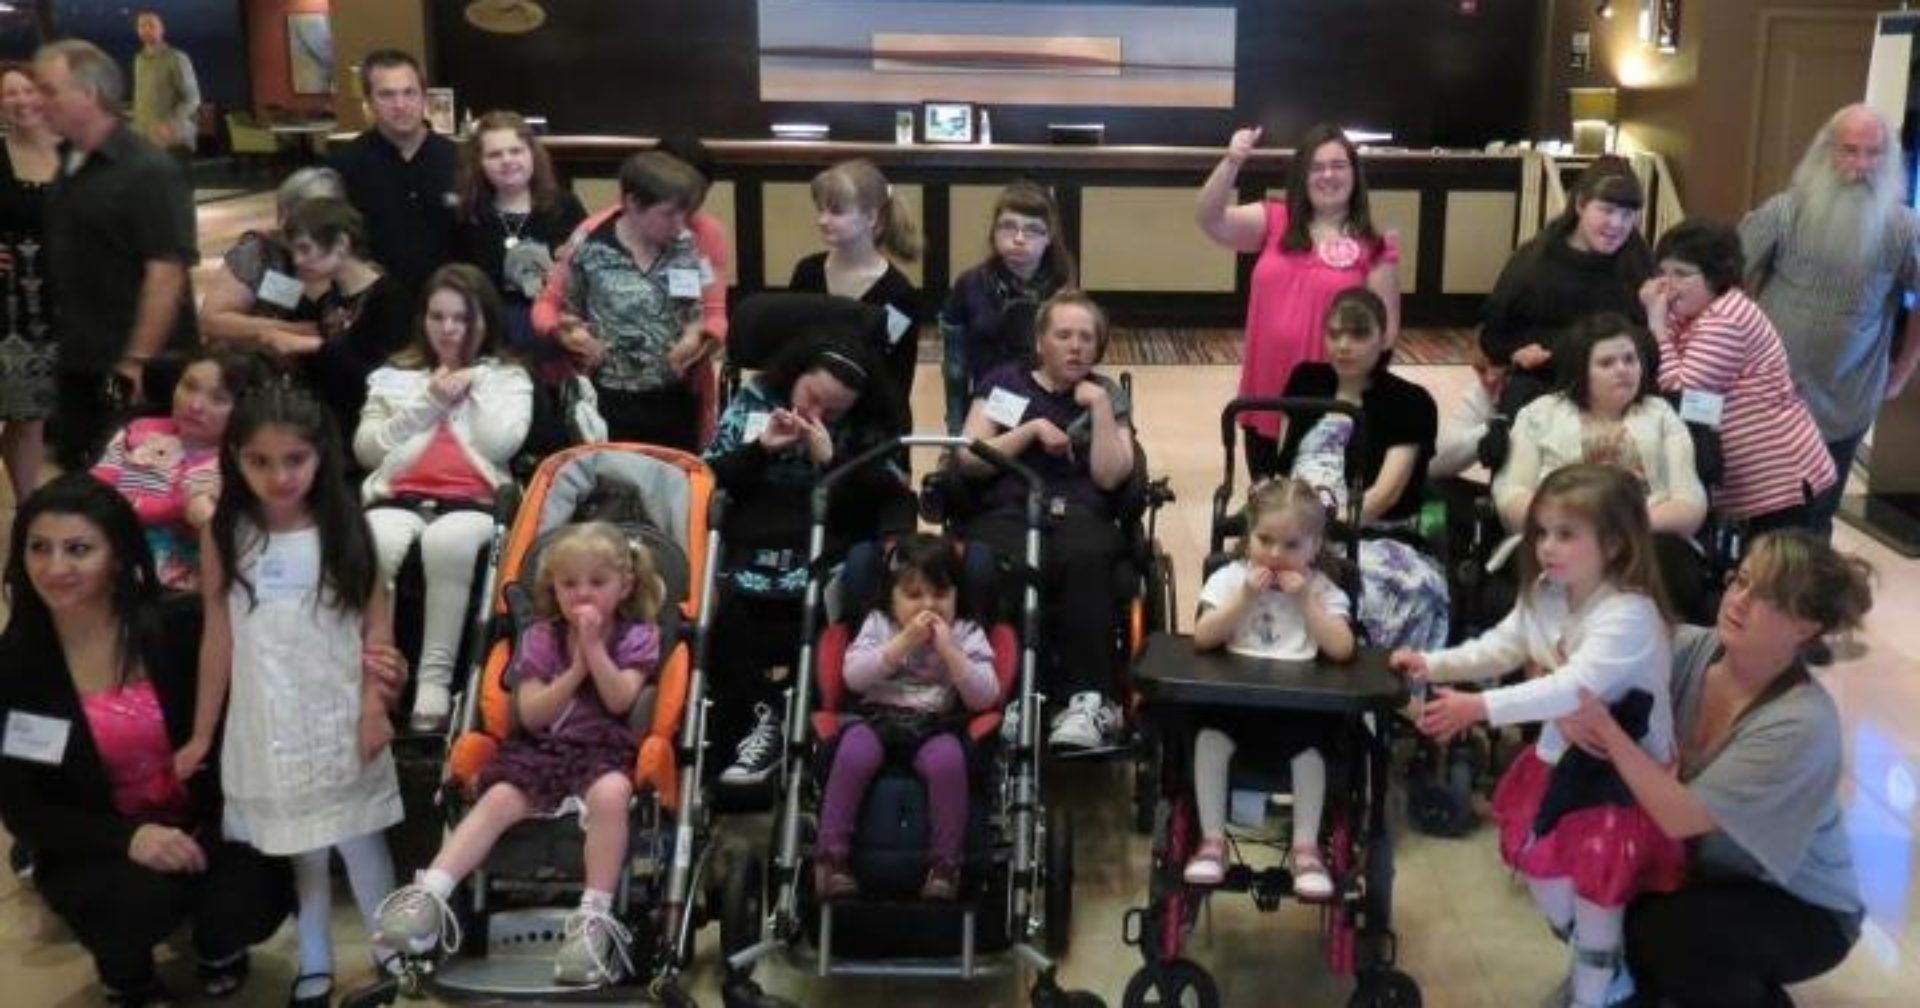 2020 Vision For Tomorrow Conference - Ontario Rett Syndrome Association